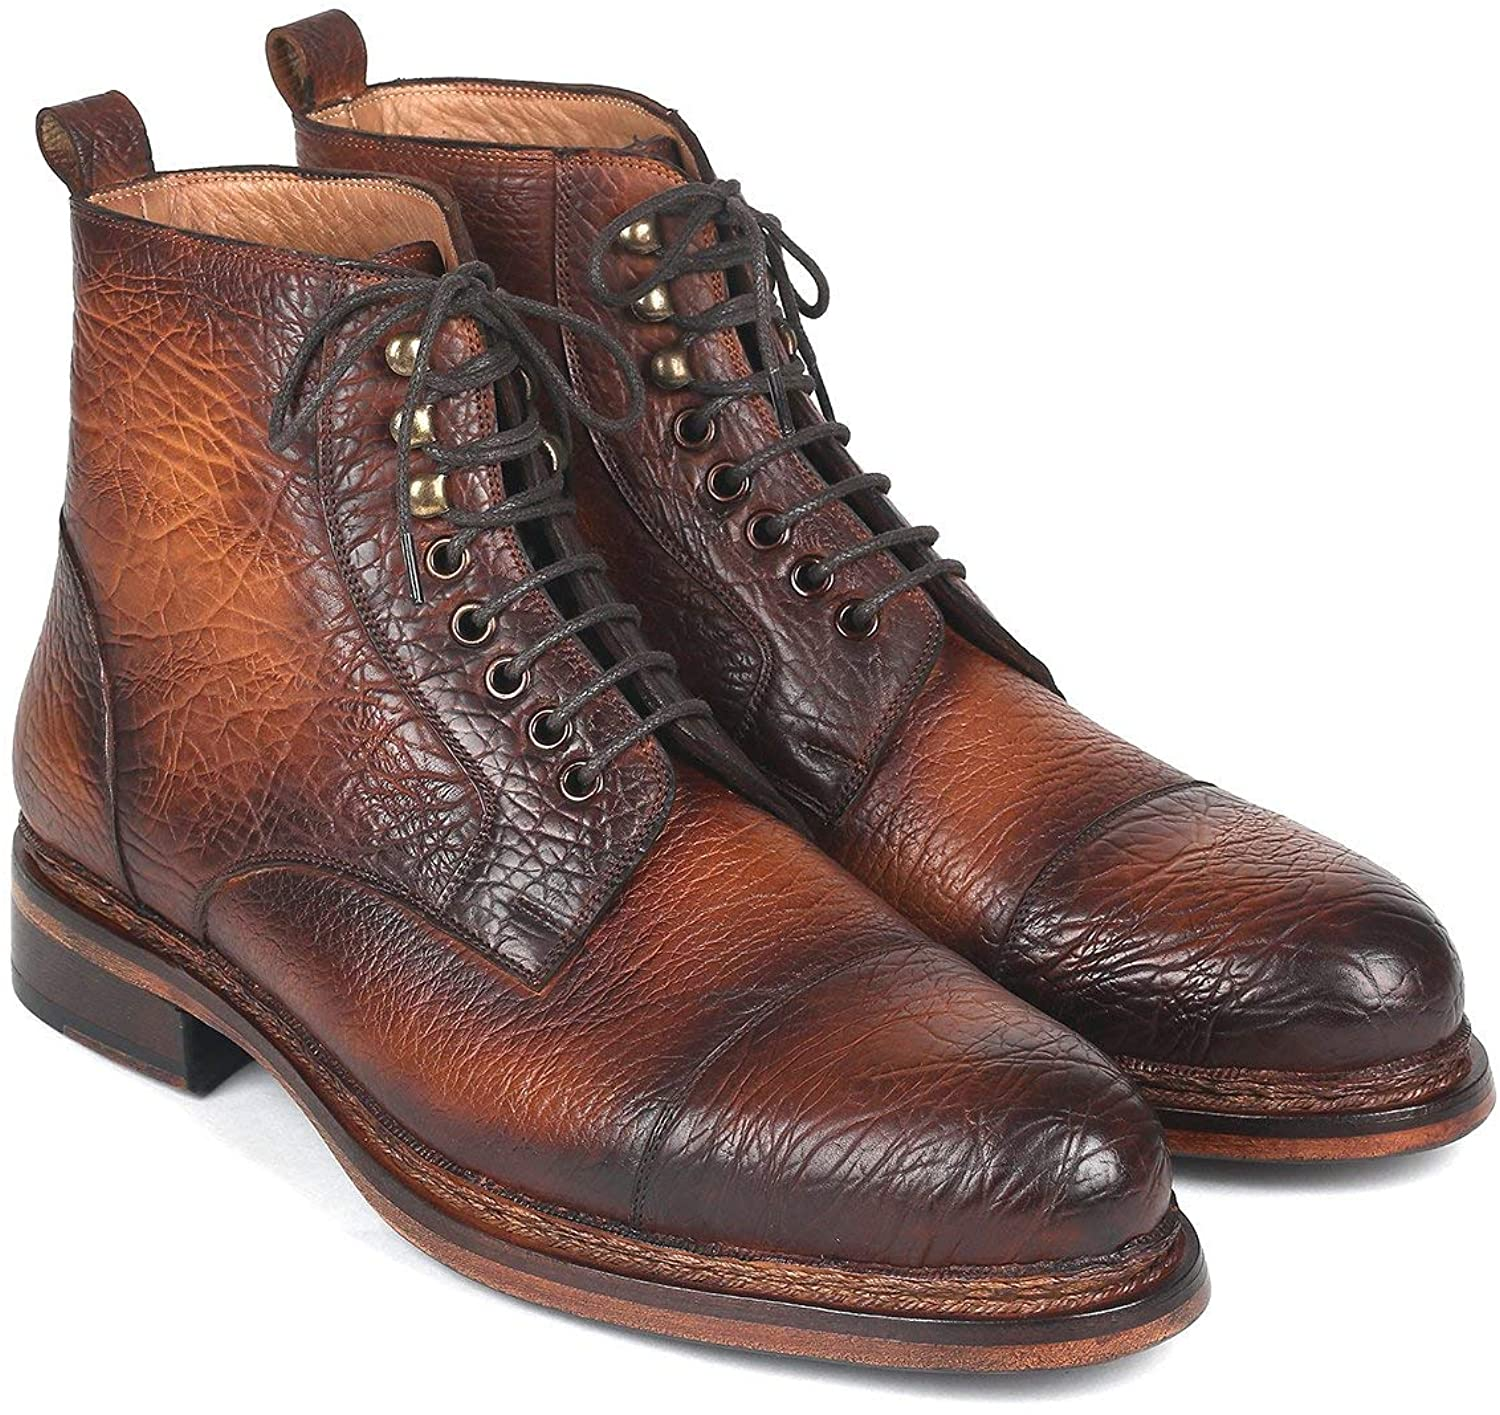 Paul Parkman Antique Burnished Leather Boots Brown (ID#5075-BRW)